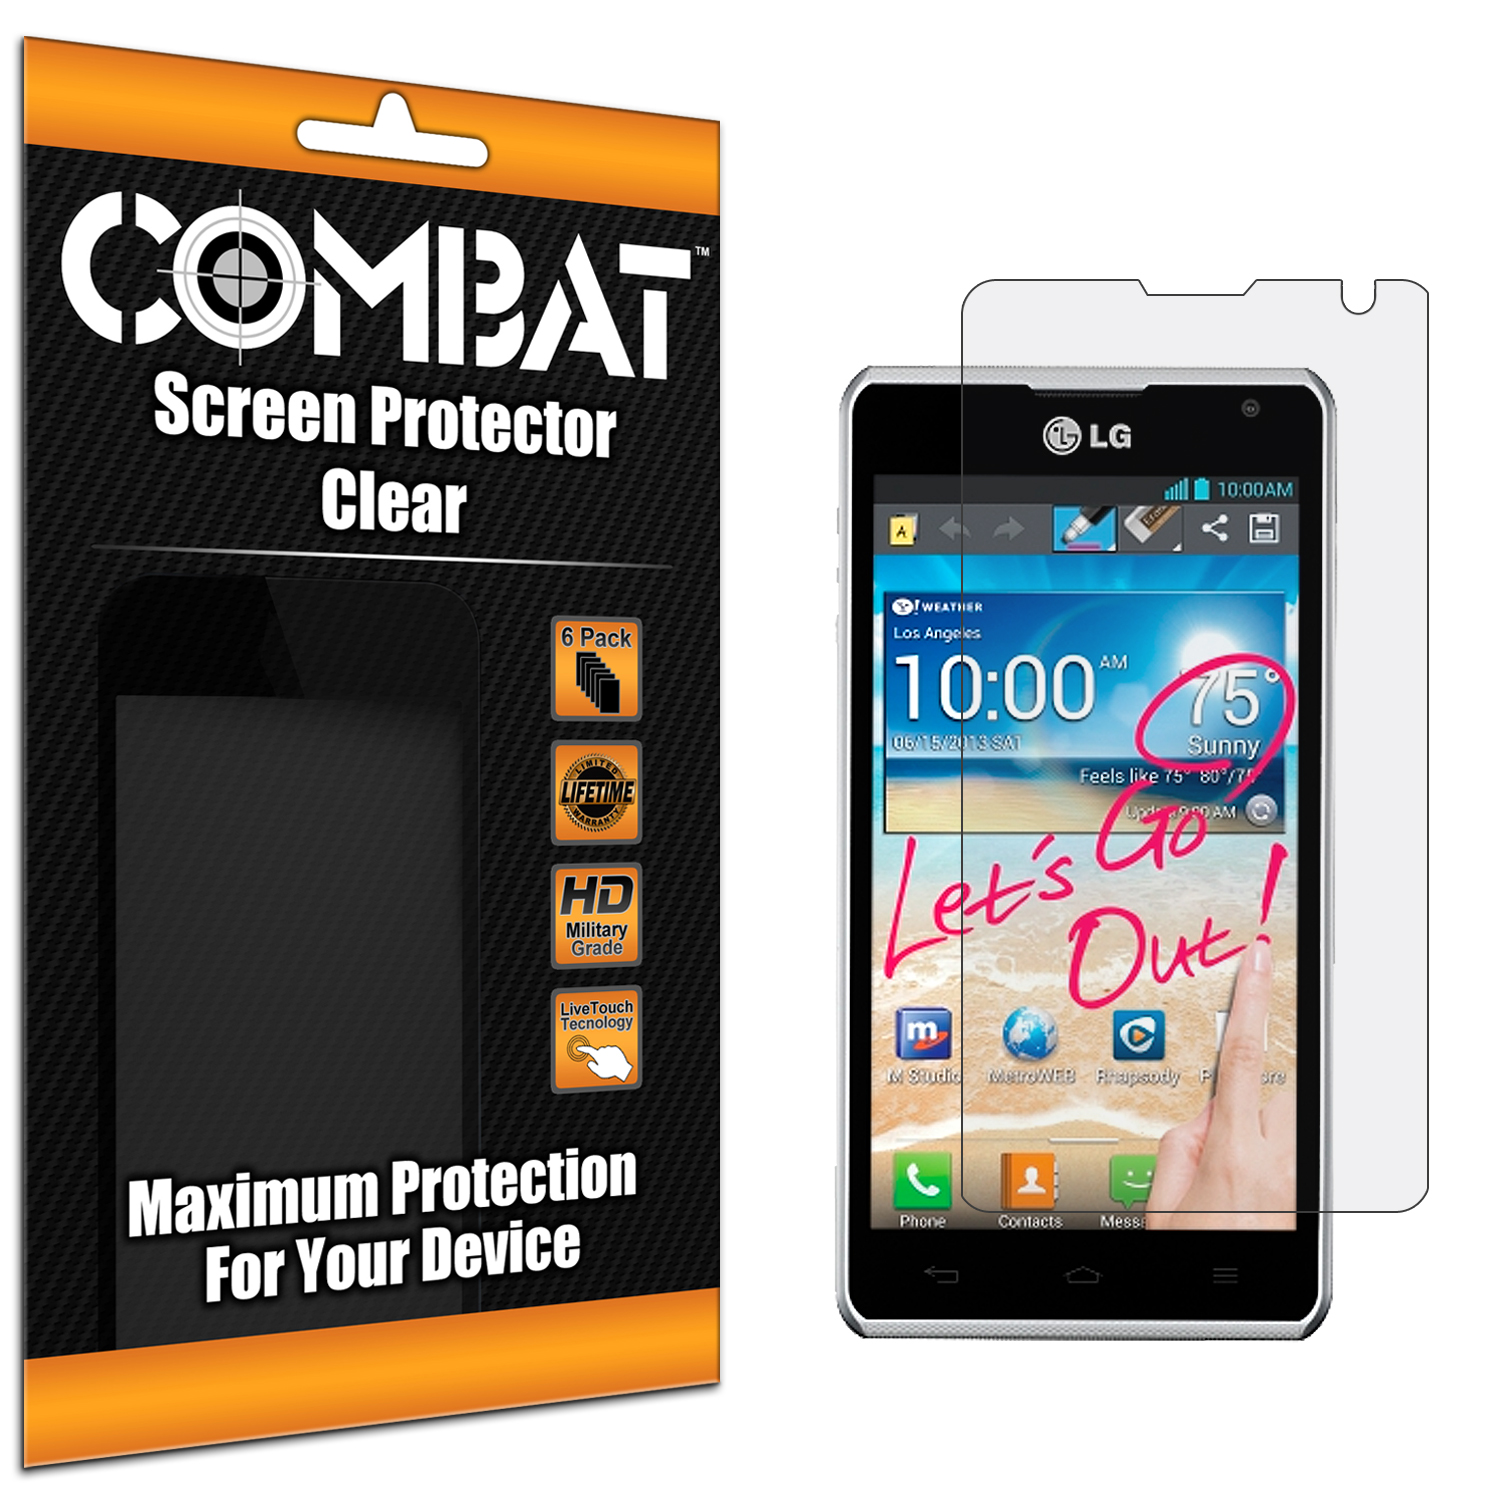 LG Spirit 4G MS870 Combat 6 Pack HD Clear Screen Protector